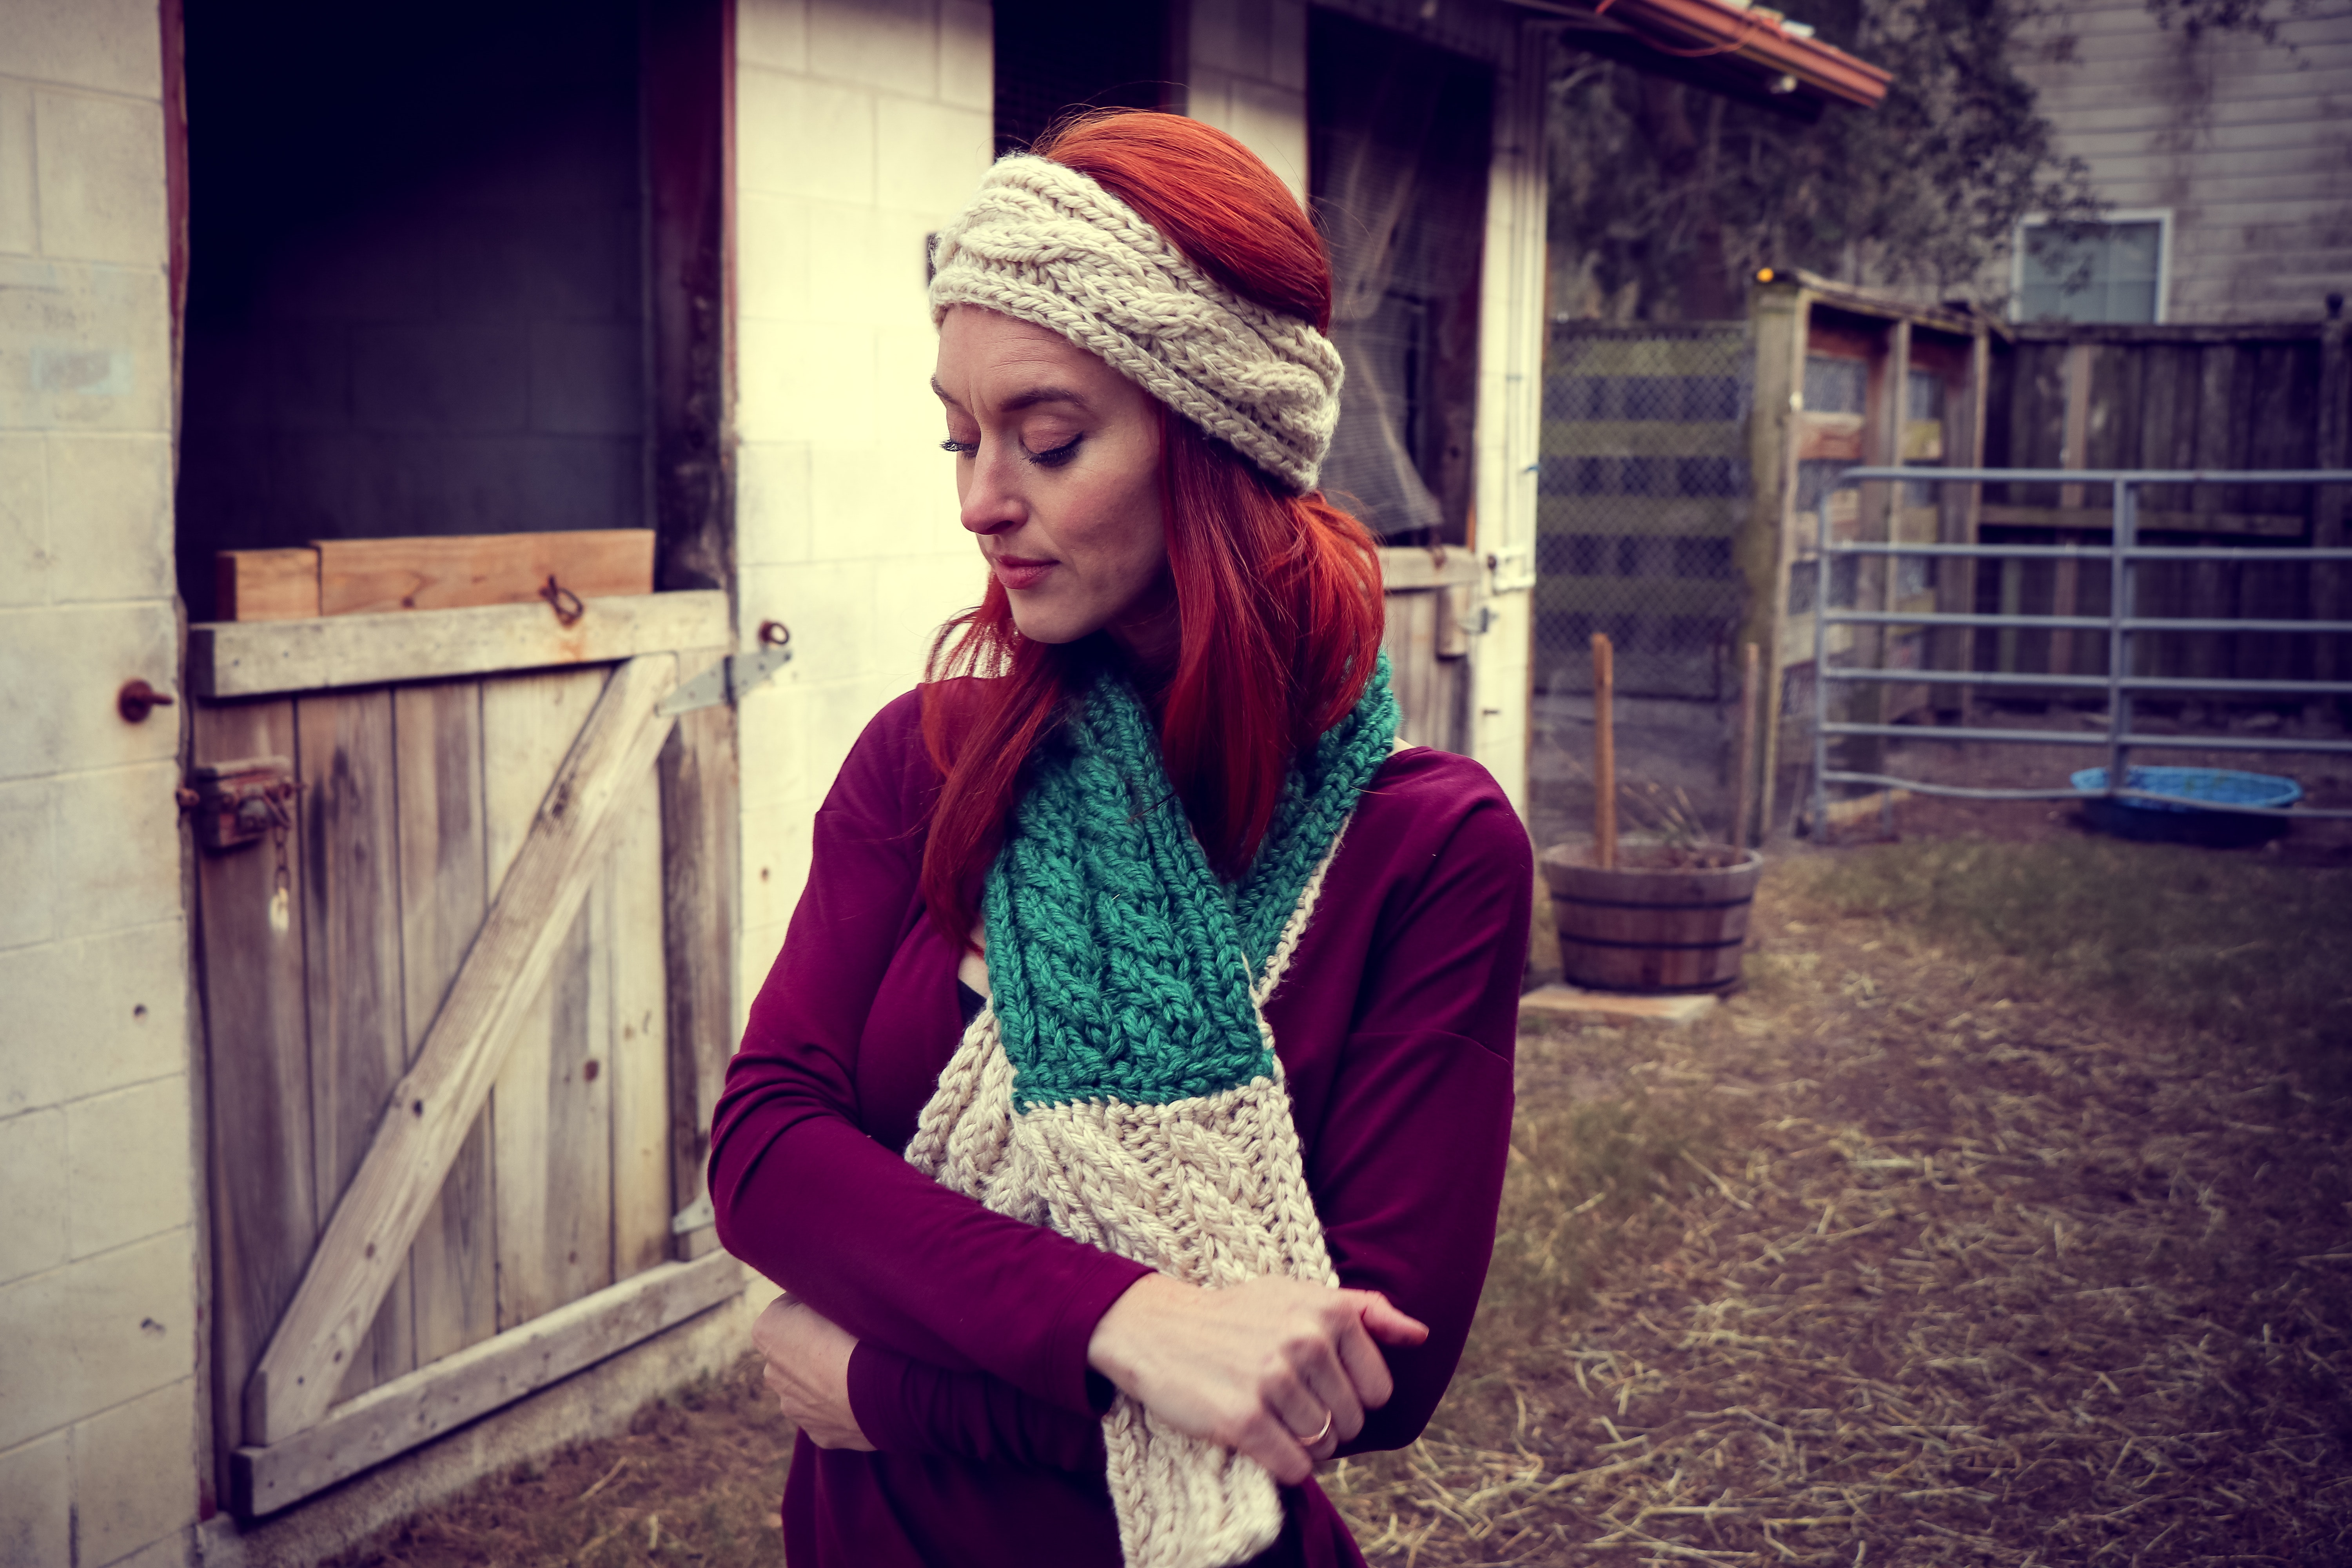 Woman in purple sweatshirt wearing knitted beanie and scarf photo